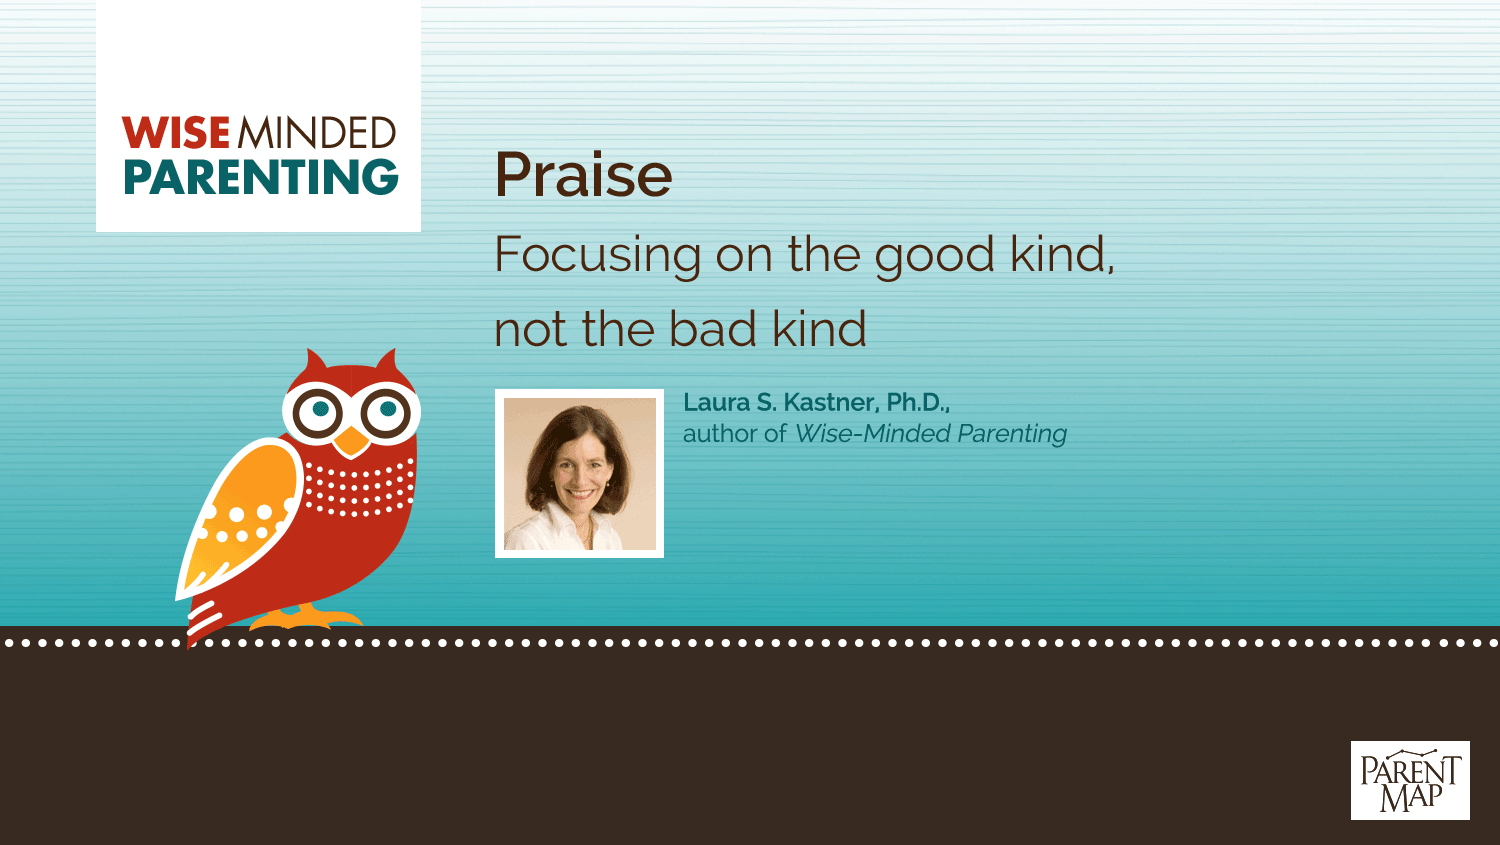 Praise: Focusing on the good kind, not the bad kind